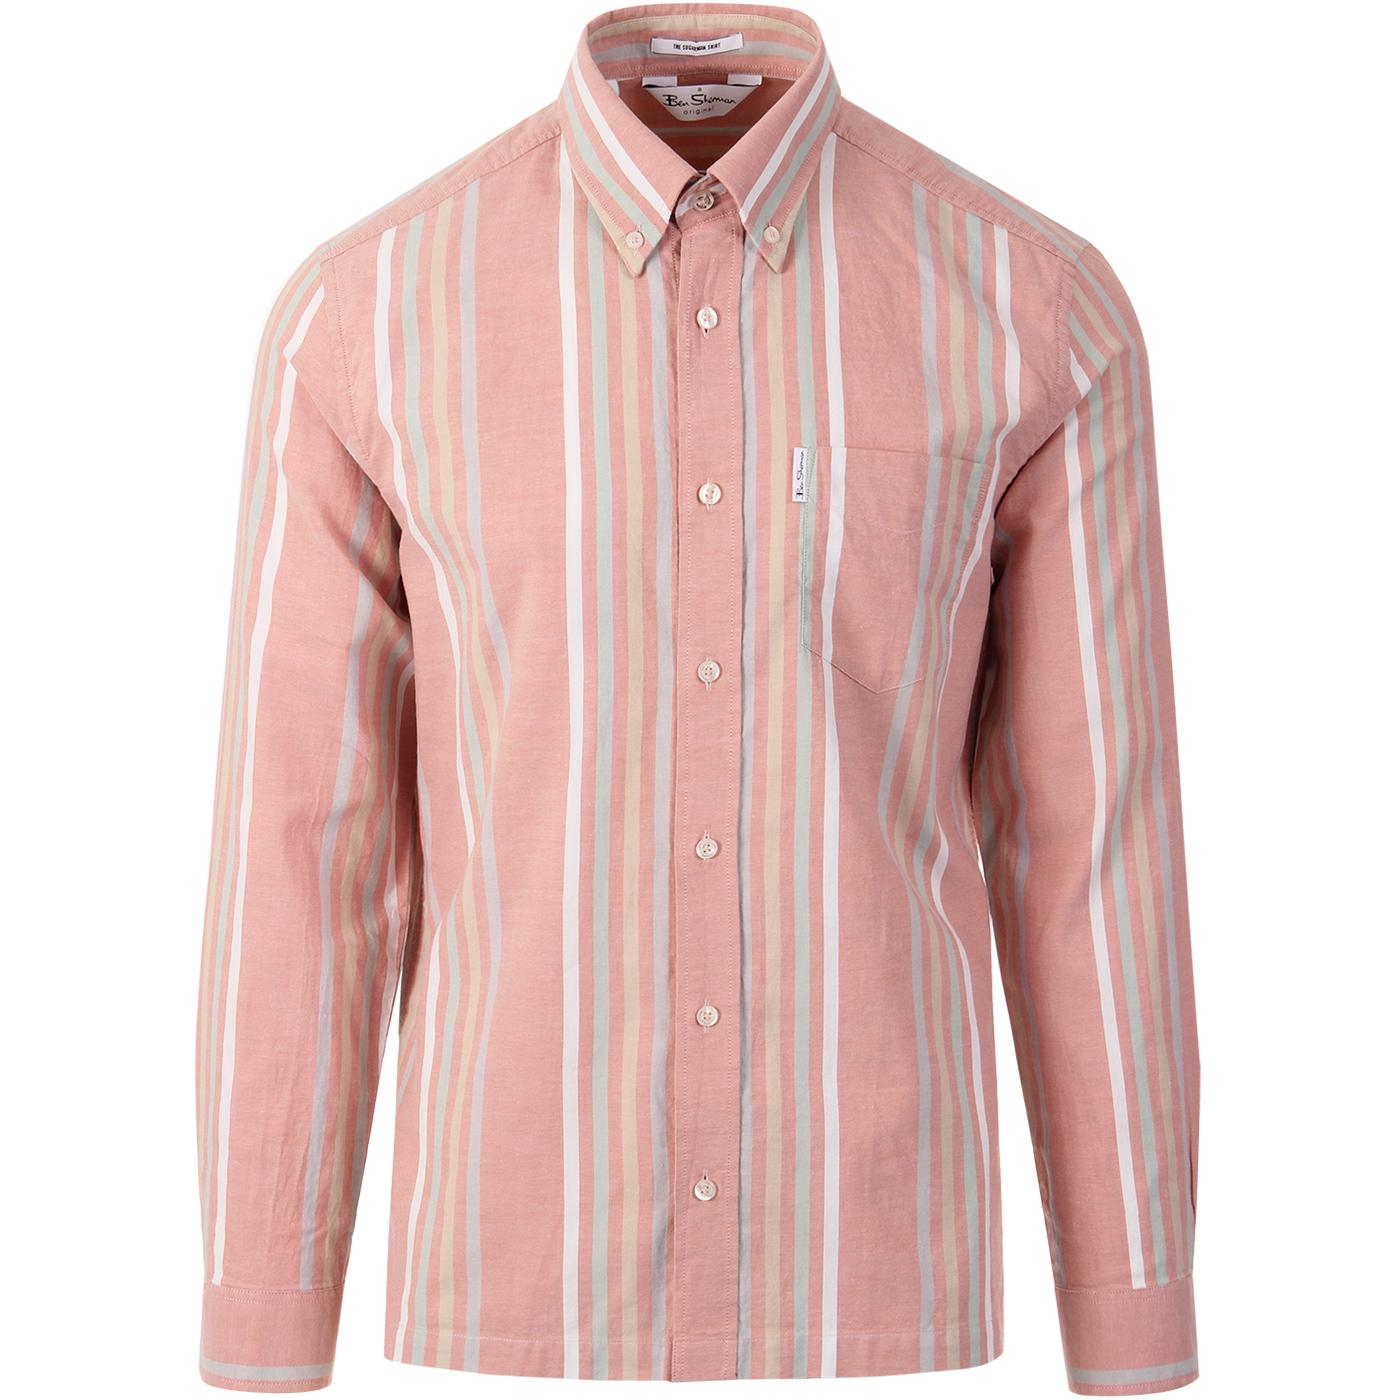 BEN SHERMAN Archive Heritage Stripe Oxford Shirt P